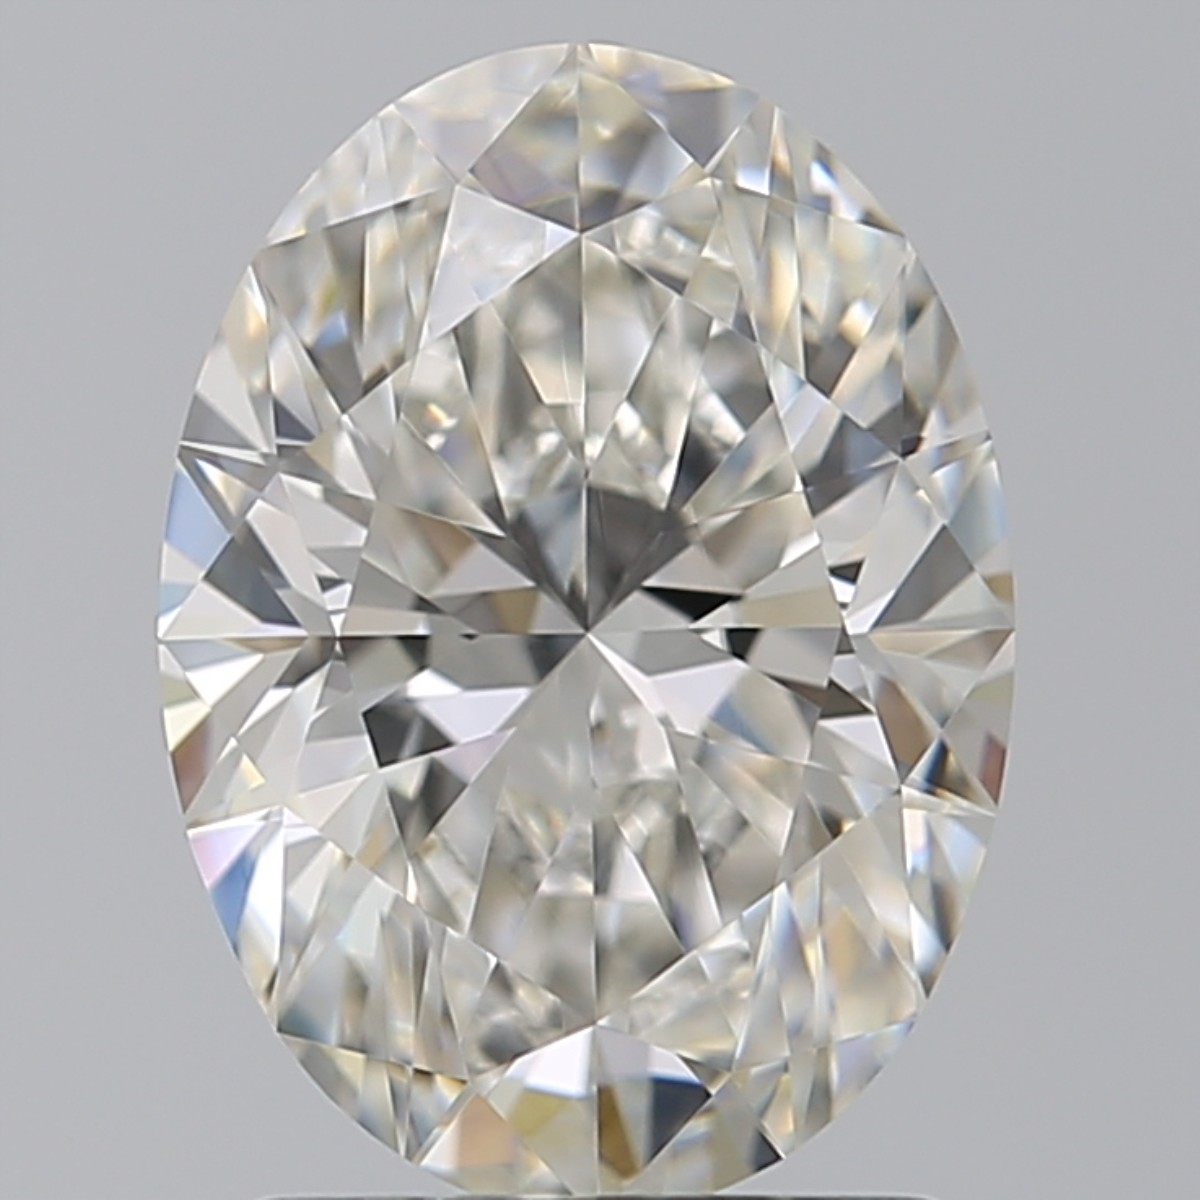 1.71 Carat Oval Diamond (H/VVS1)